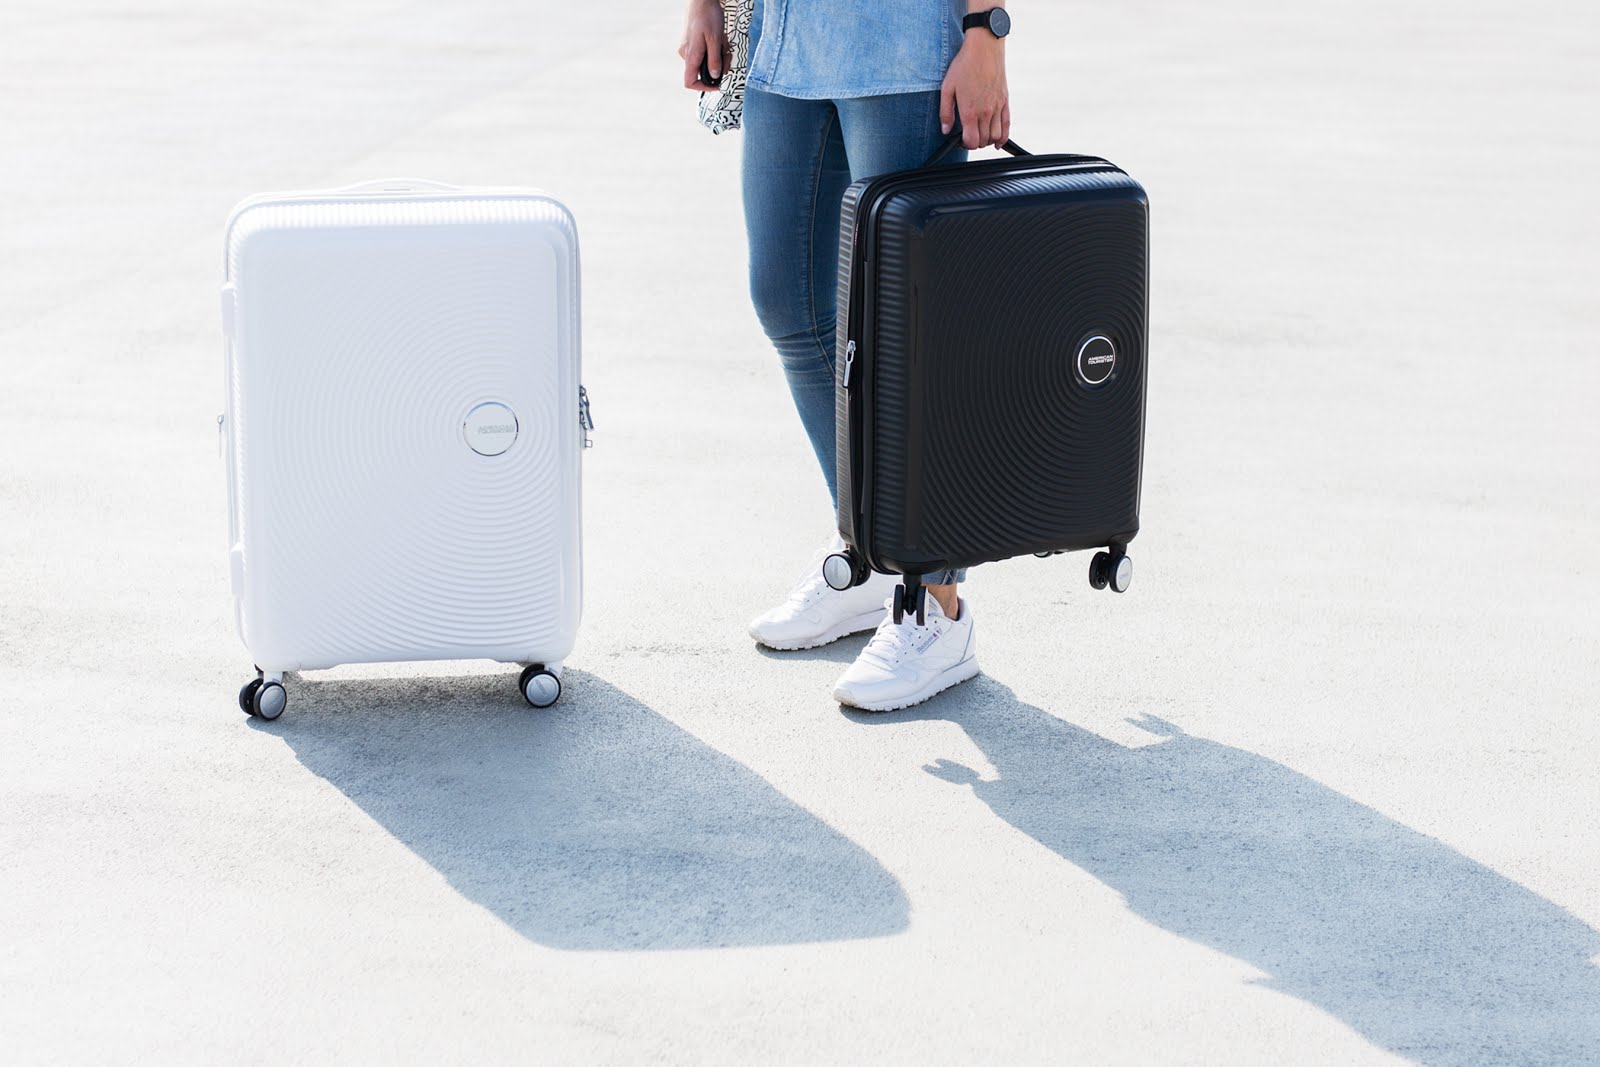 american tourister soundbox medium, black, larg, white, suitcase, trolley, cabin case, editorial, meandmyat